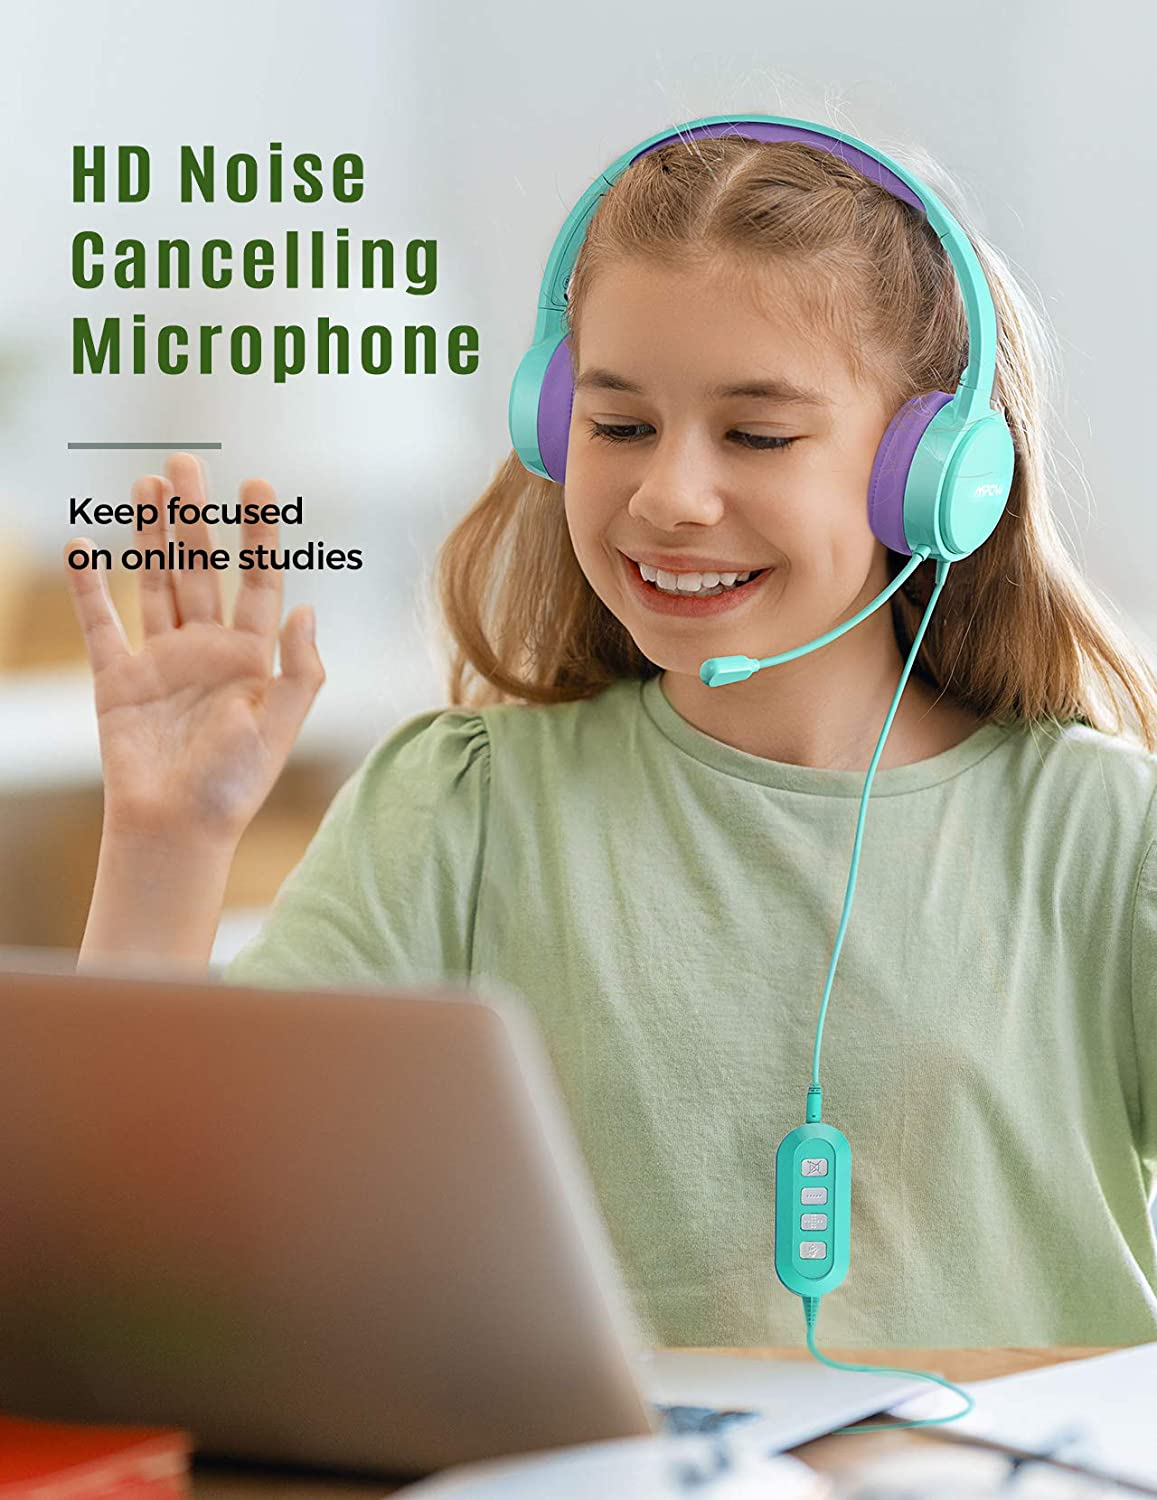 Mpow 071 Kid Headphone, 3.5MM & USB Headset With Microphone Noise Canceling, Lightweight Computer Headset With Volume Control, Fit For K12 School Virtual Learning, Language Lessons, Online Study